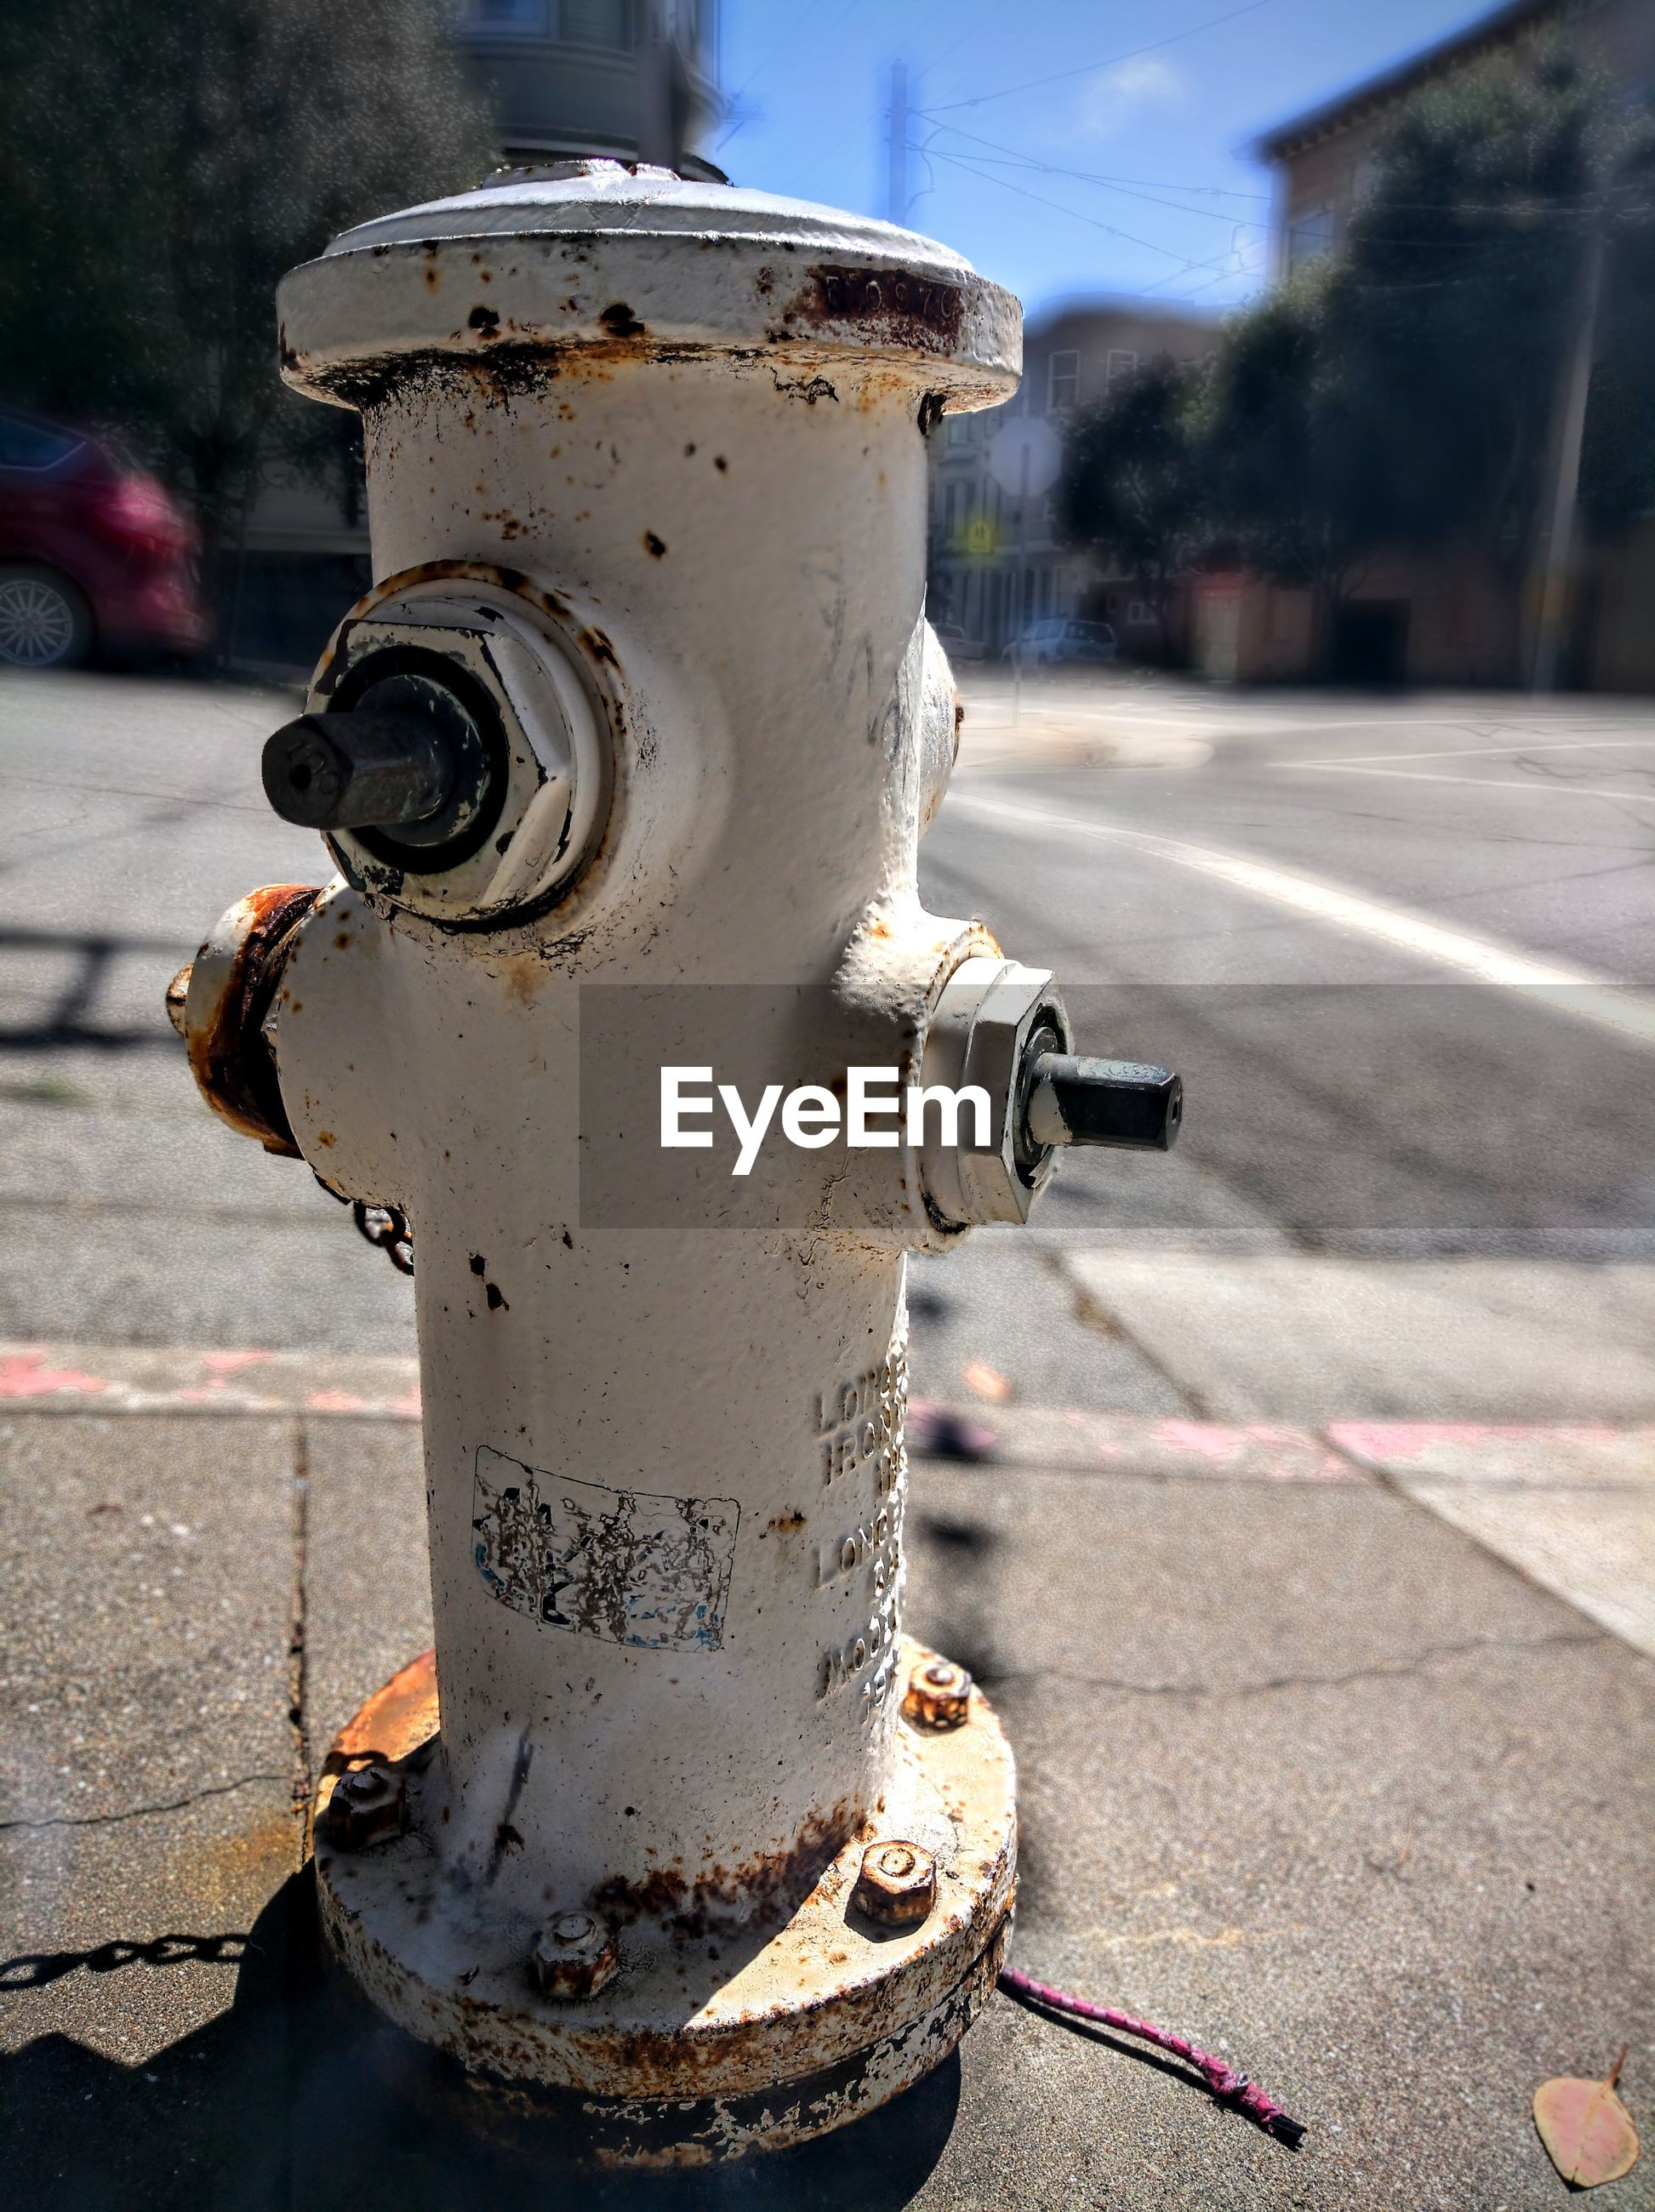 CLOSE-UP OF FIRE HYDRANT ON CITY STREET